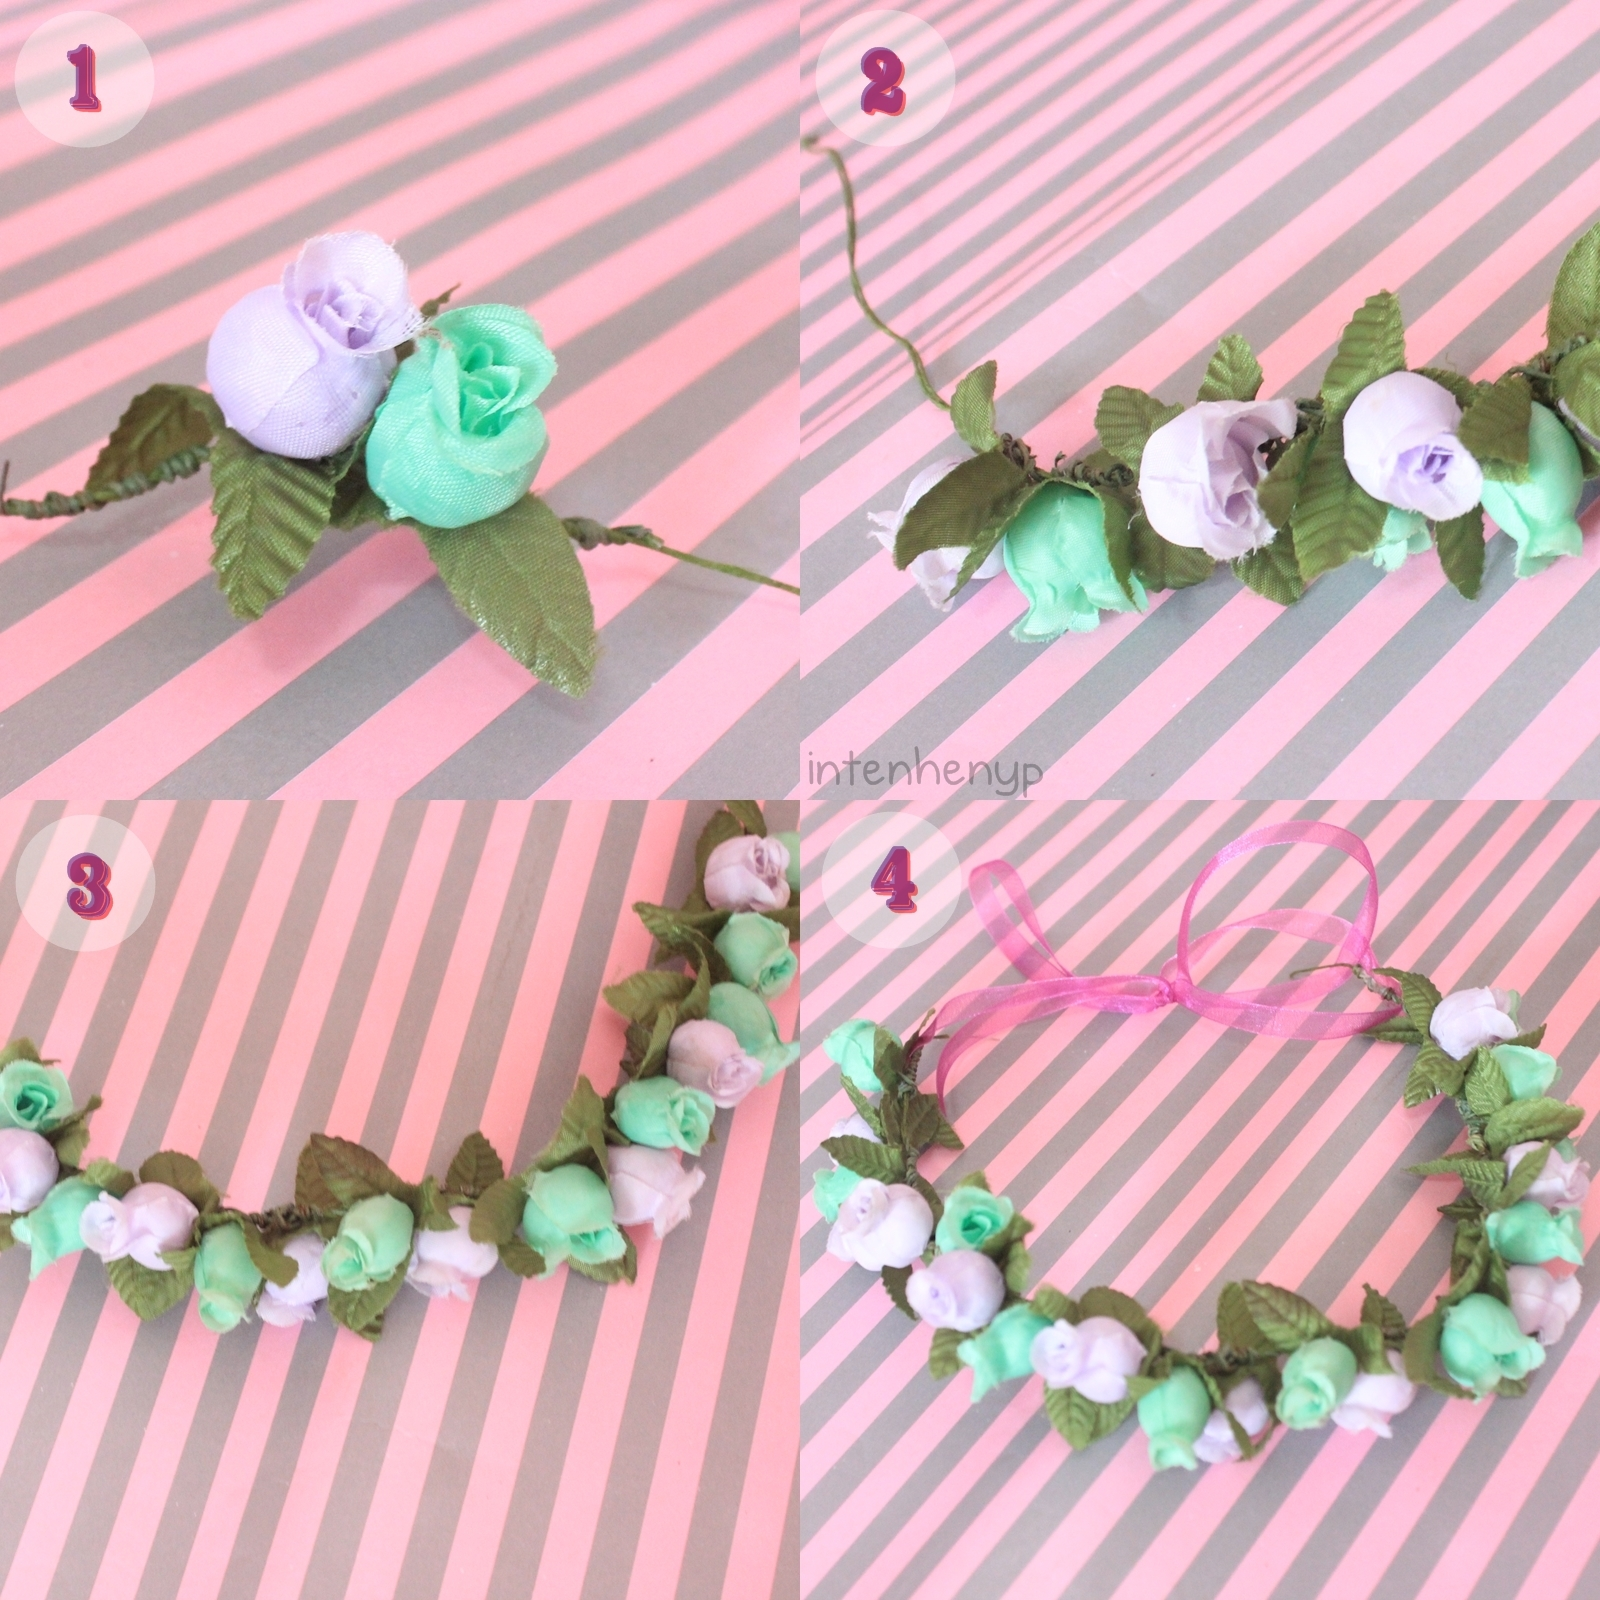 How to Make Your Own Flower Crown You Make Your Own Flower